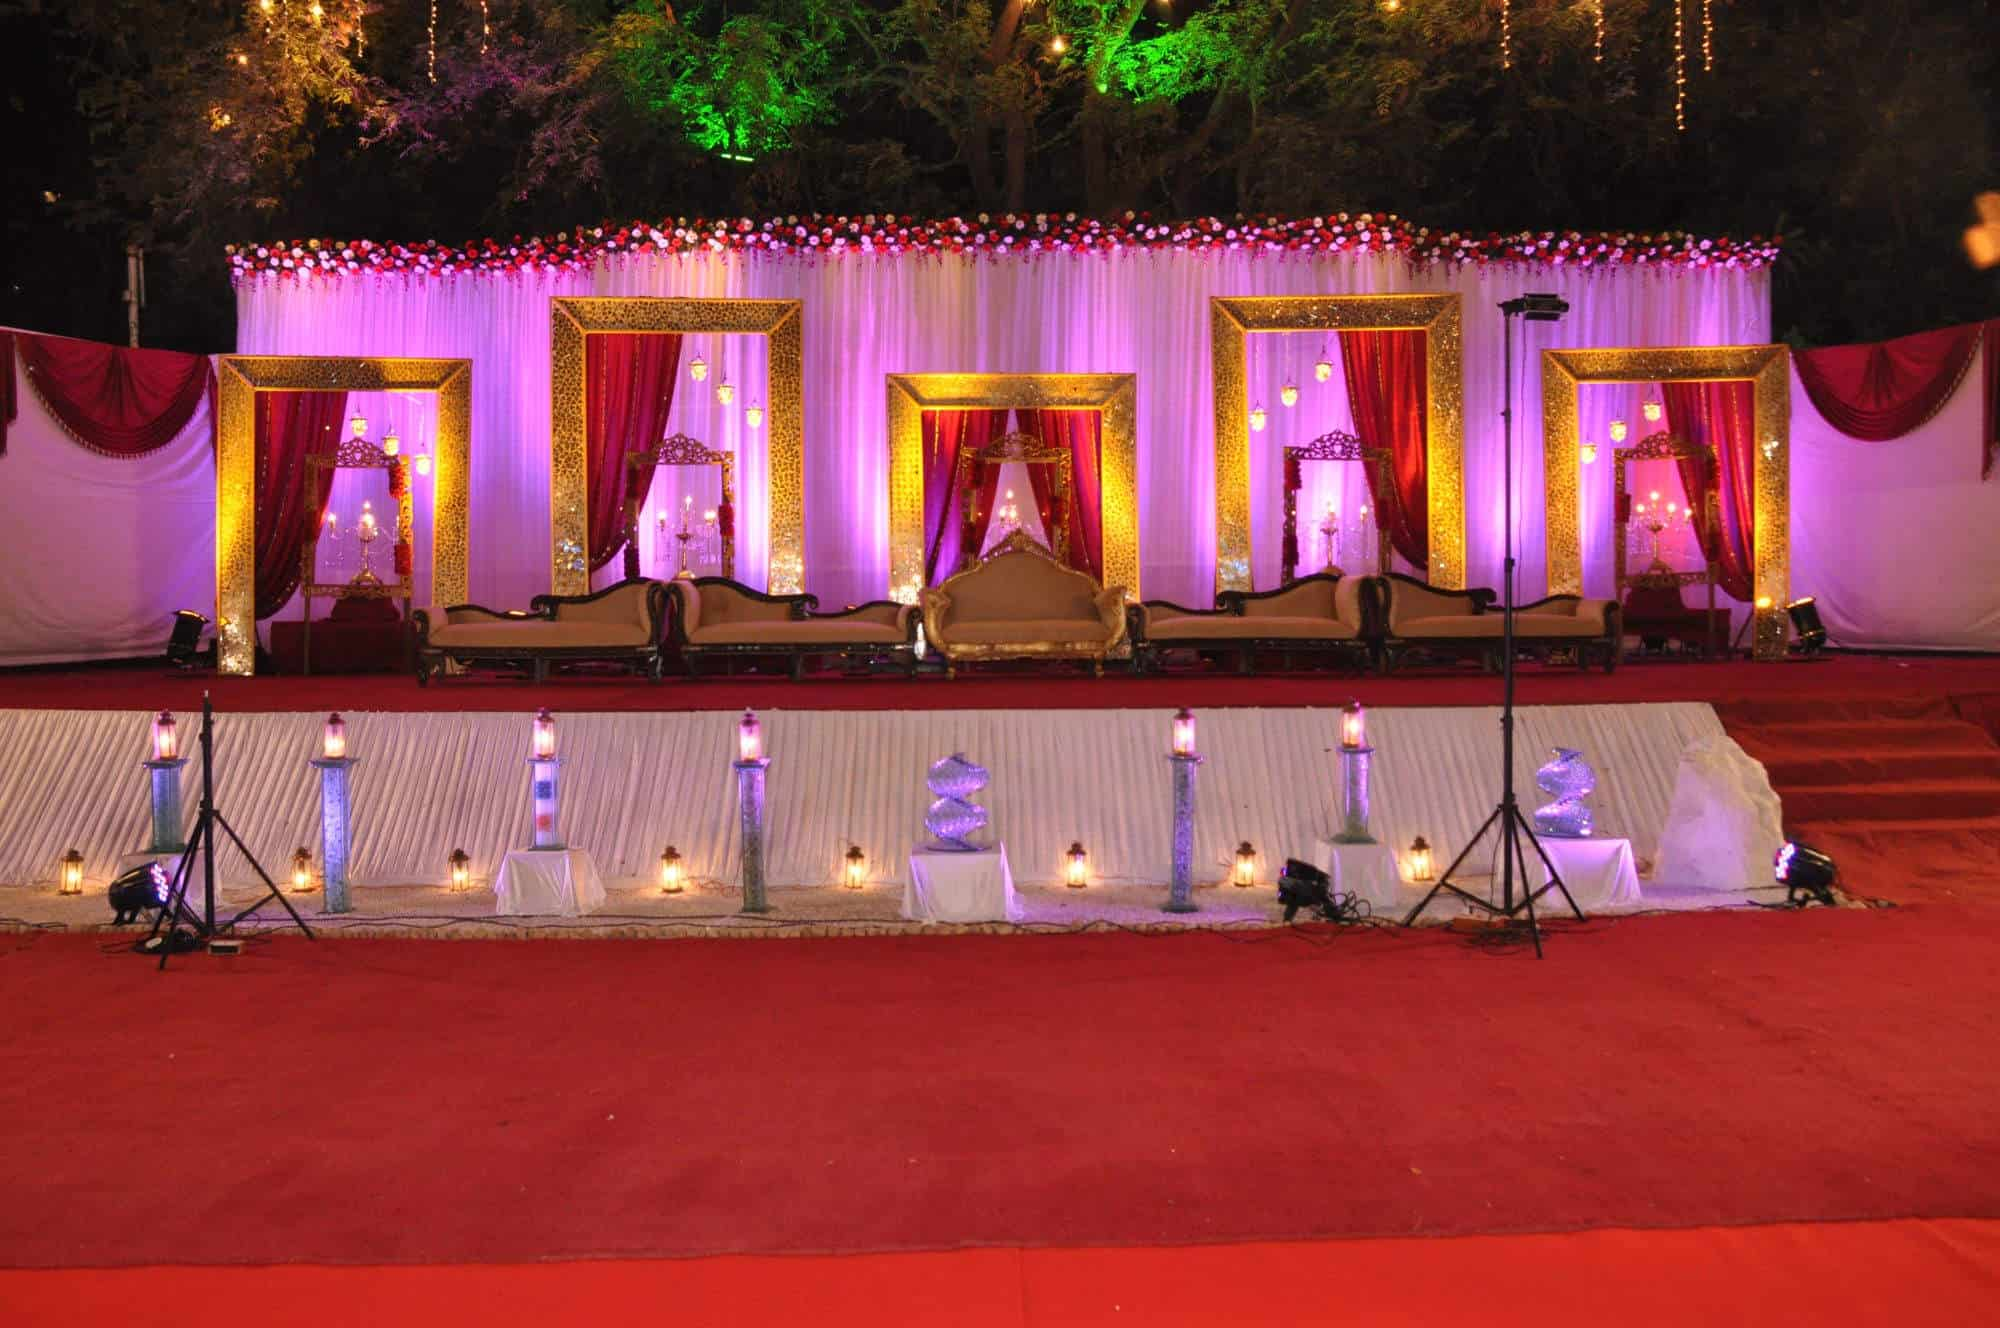 New sangam decorators photos dongri mumbai pictures images event organiser new sangam decorators photos dongri mumbai wedding decorators junglespirit Gallery